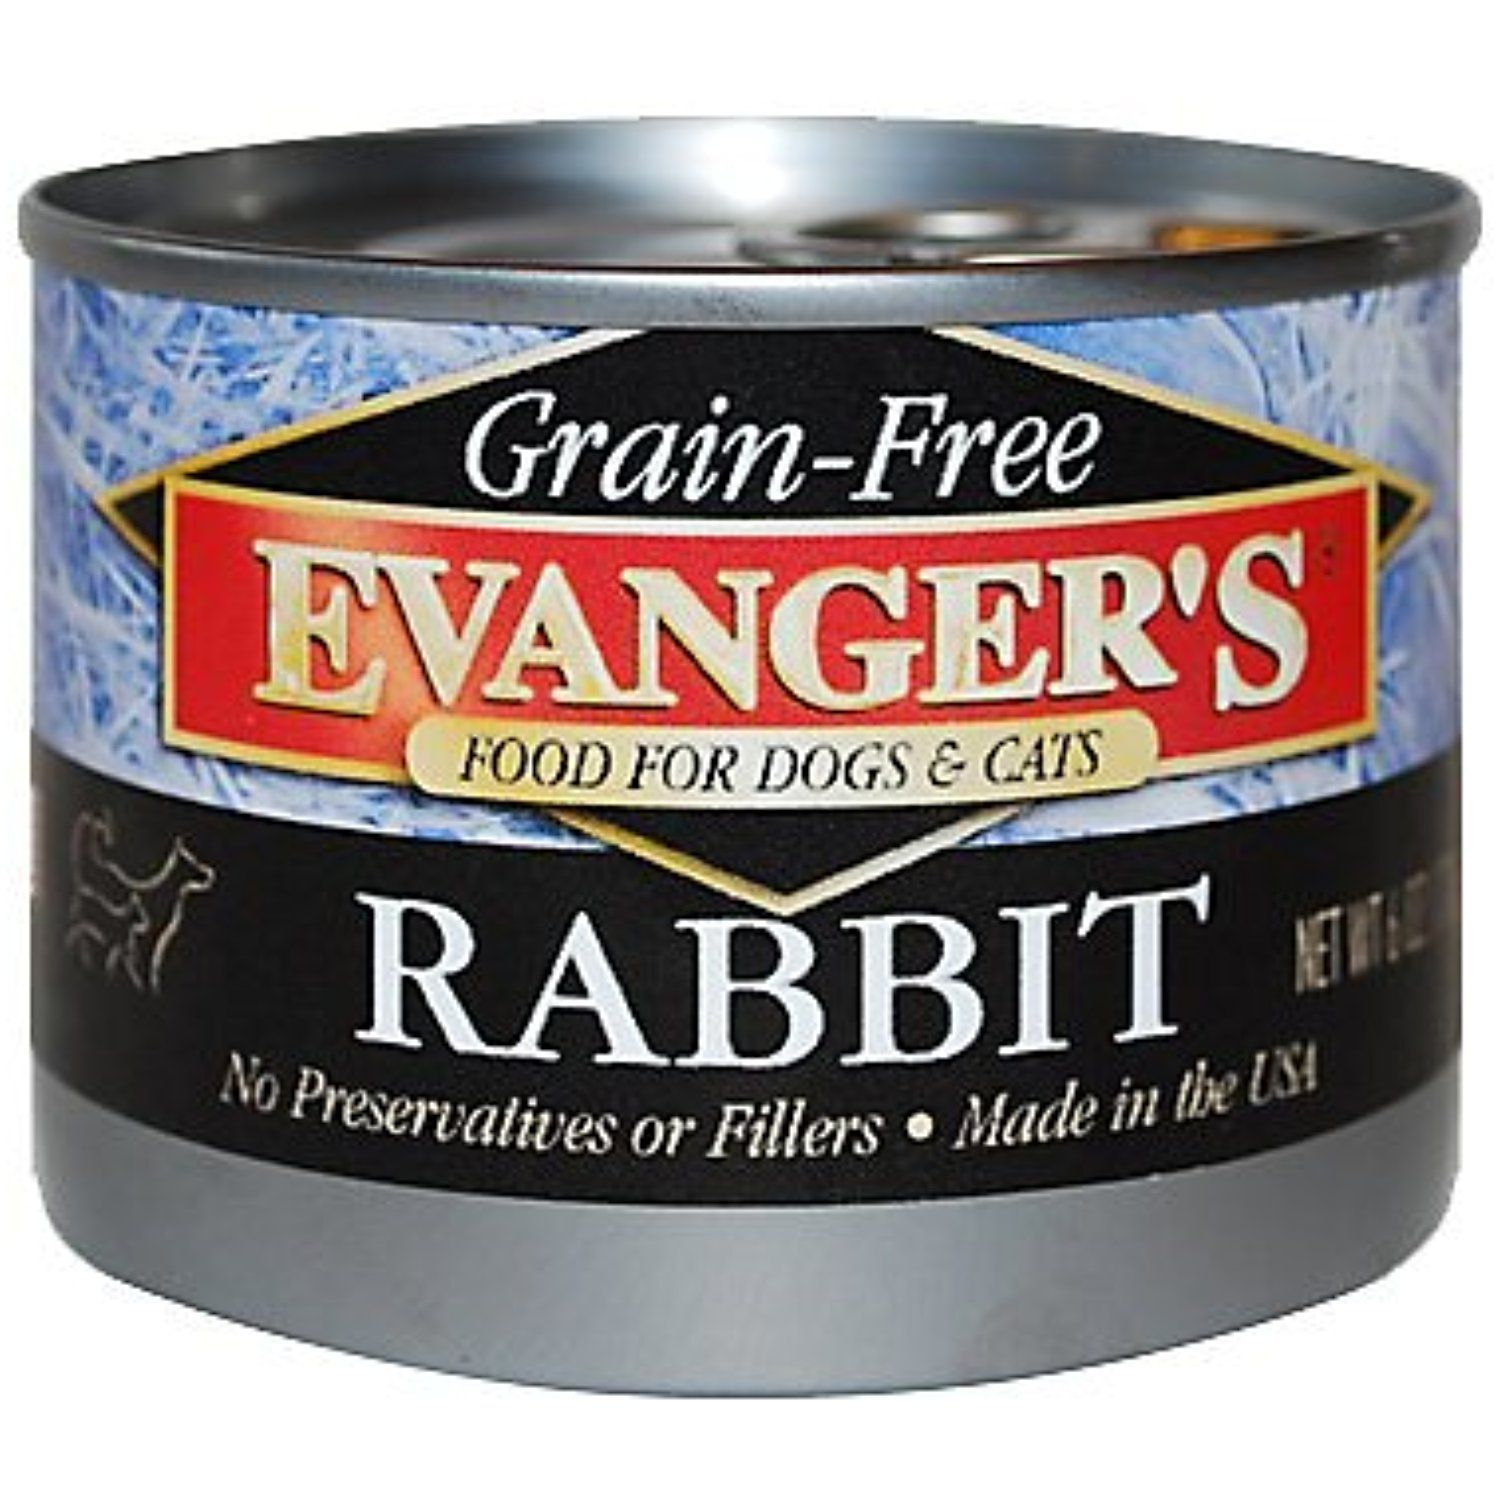 Evanger's GrainFree Rabbit Canned Food 24/6oz cans